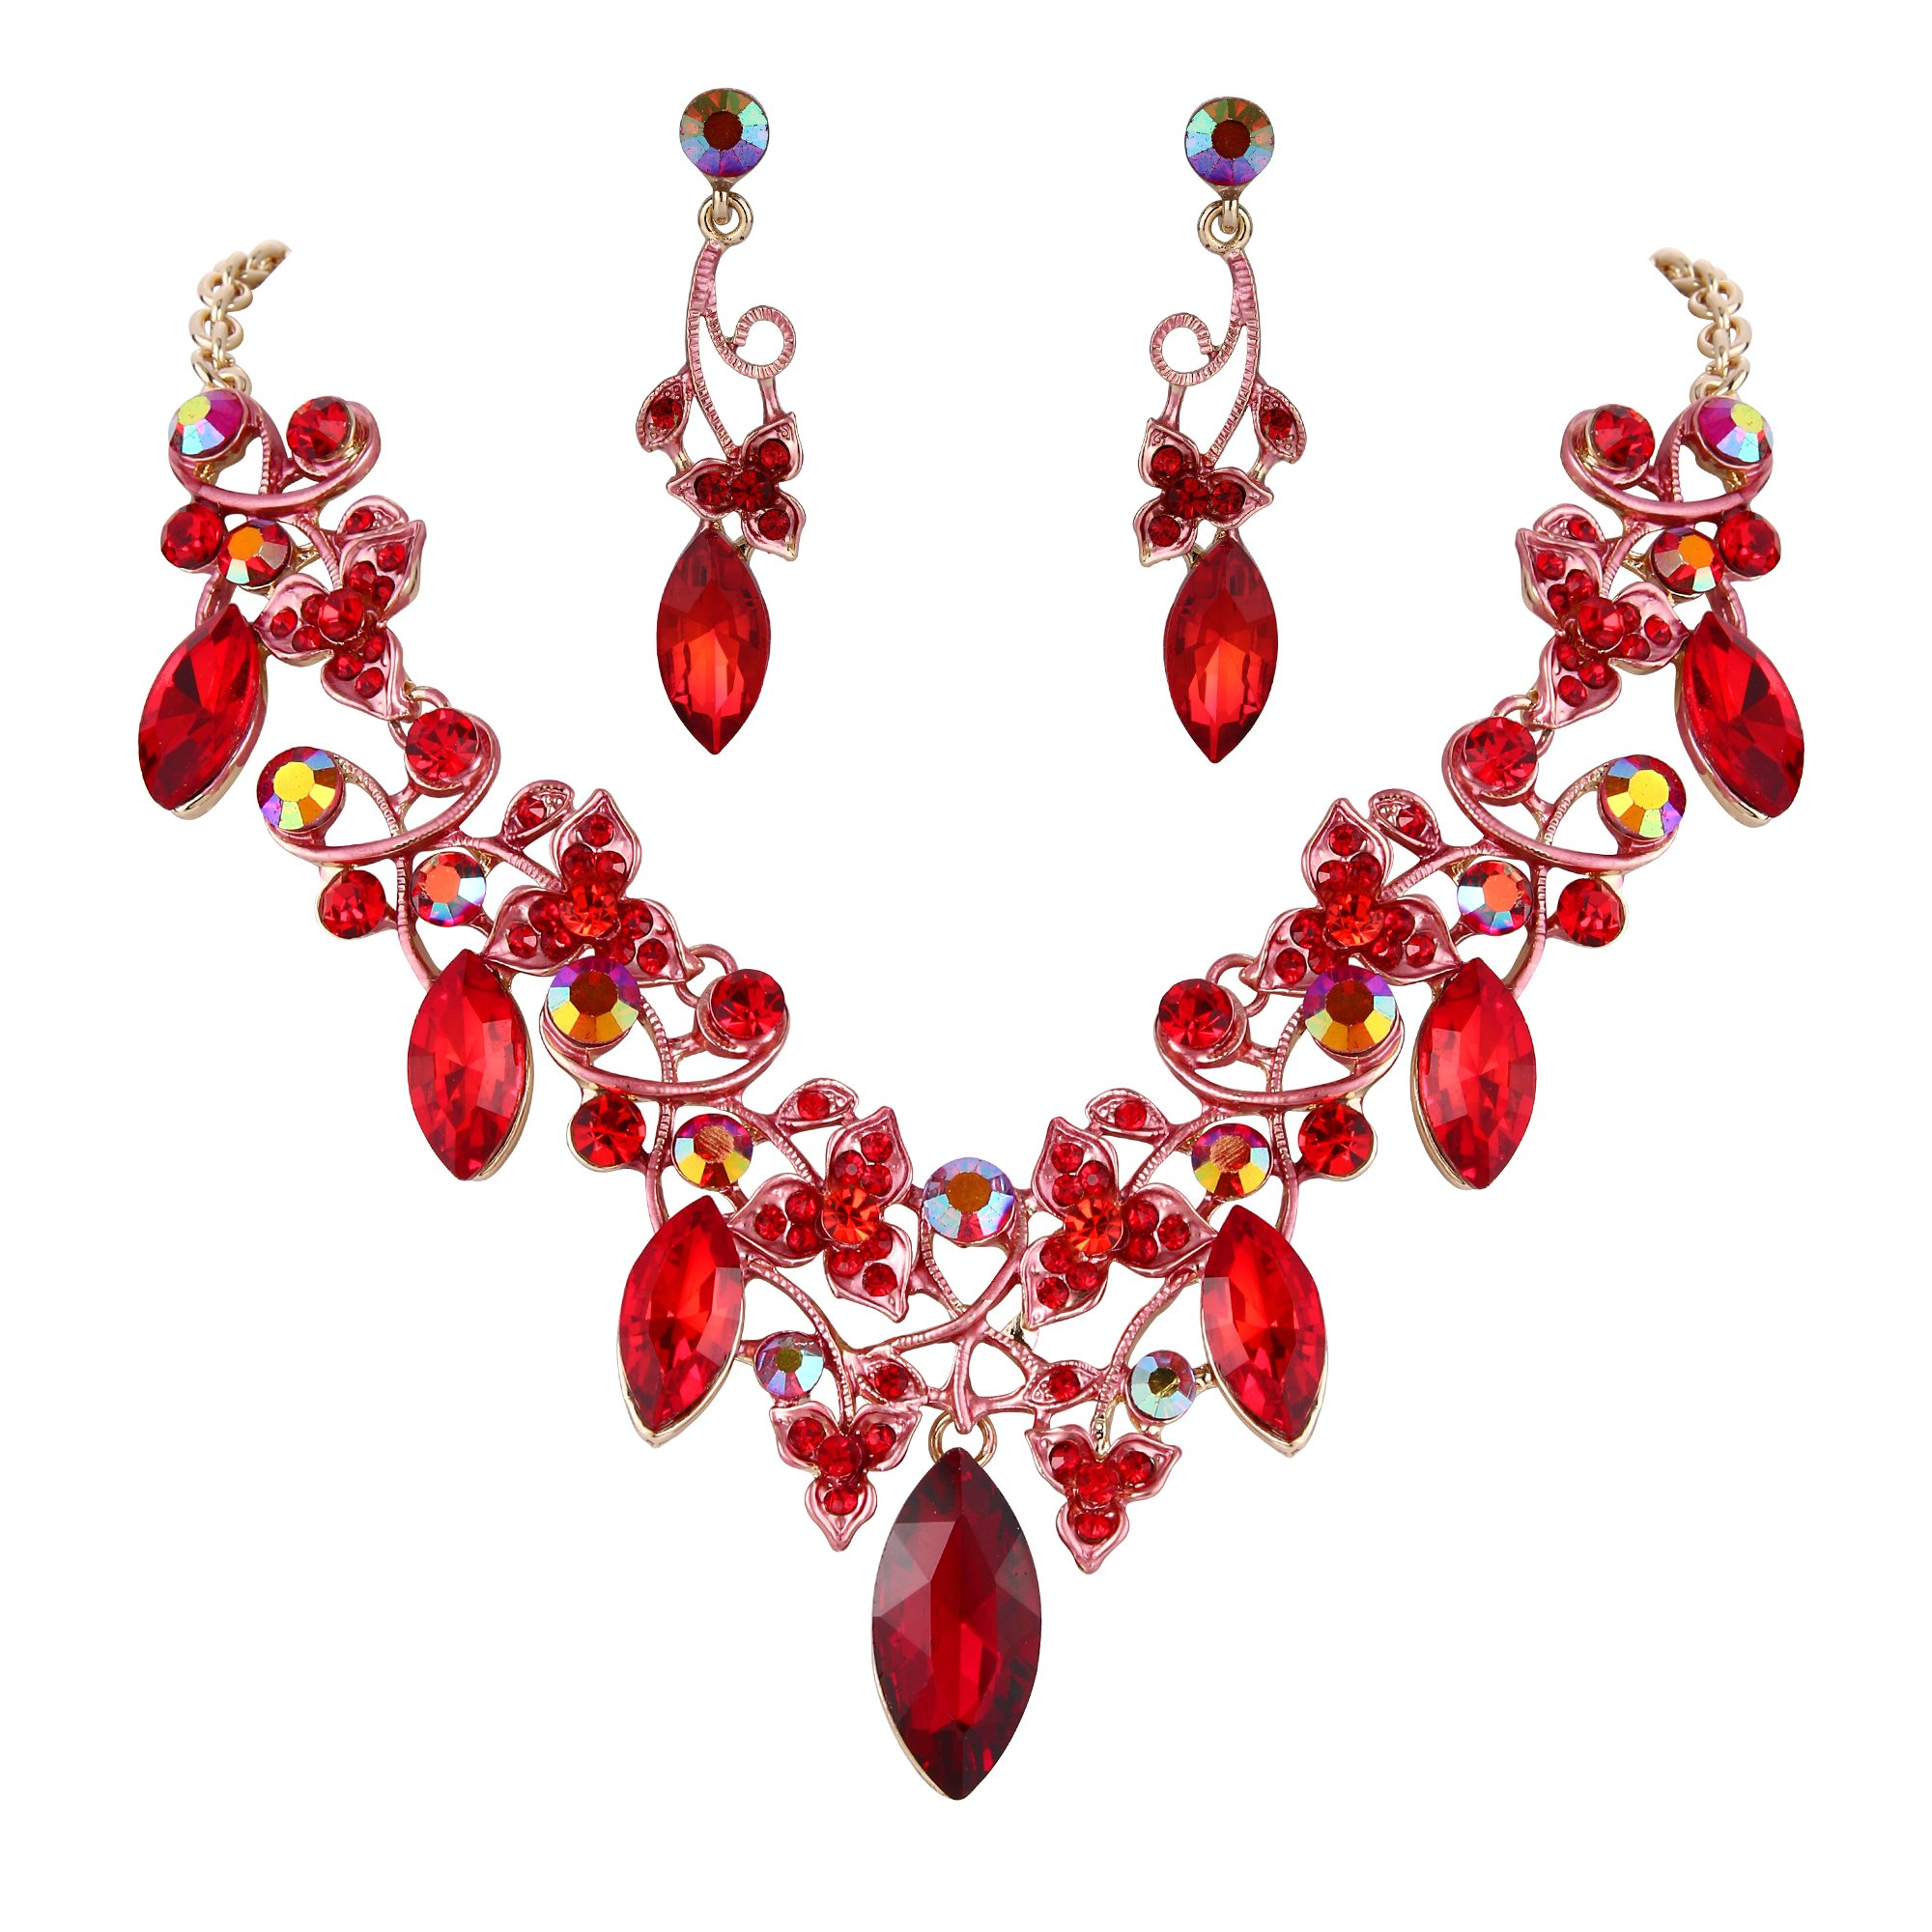 BriLove Women's Bohemian Boho Statement Necklace Dangle Earrings Jewelry Set with Crystal Floral Vine Leaf Ruby Color Gold-Tone